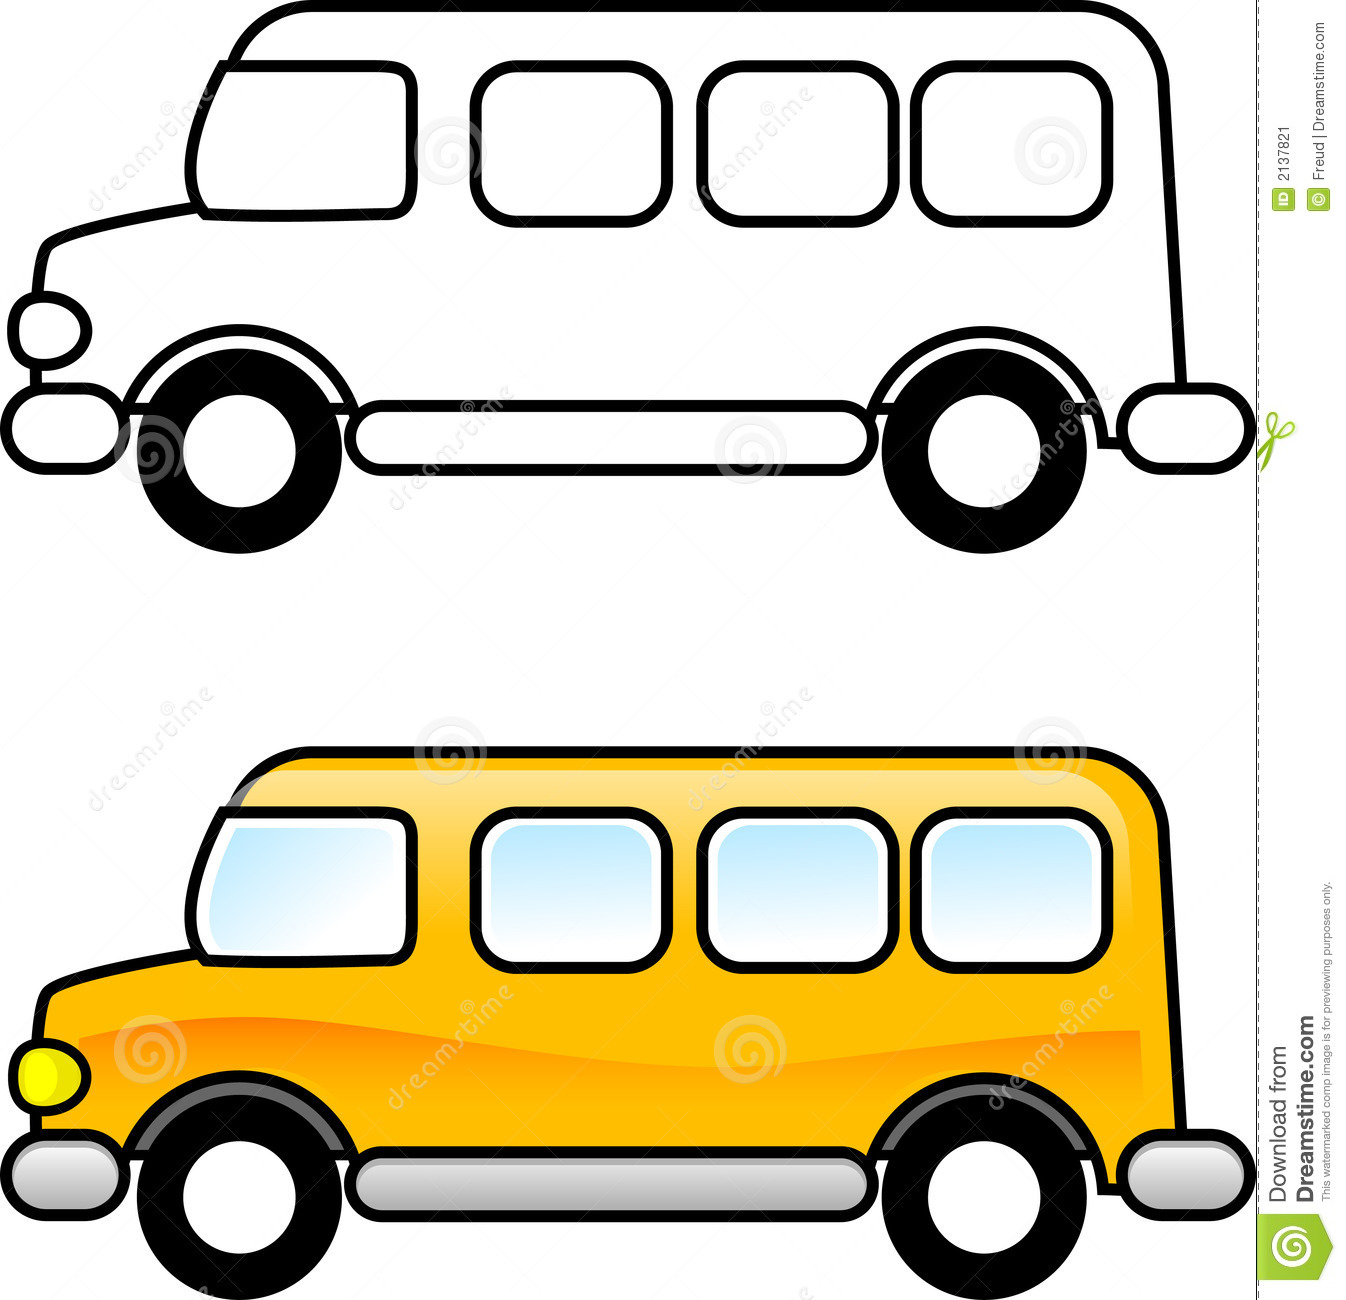 School bus clipart red lips picture library library Buses Clipart | Free download best Buses Clipart on ... picture library library